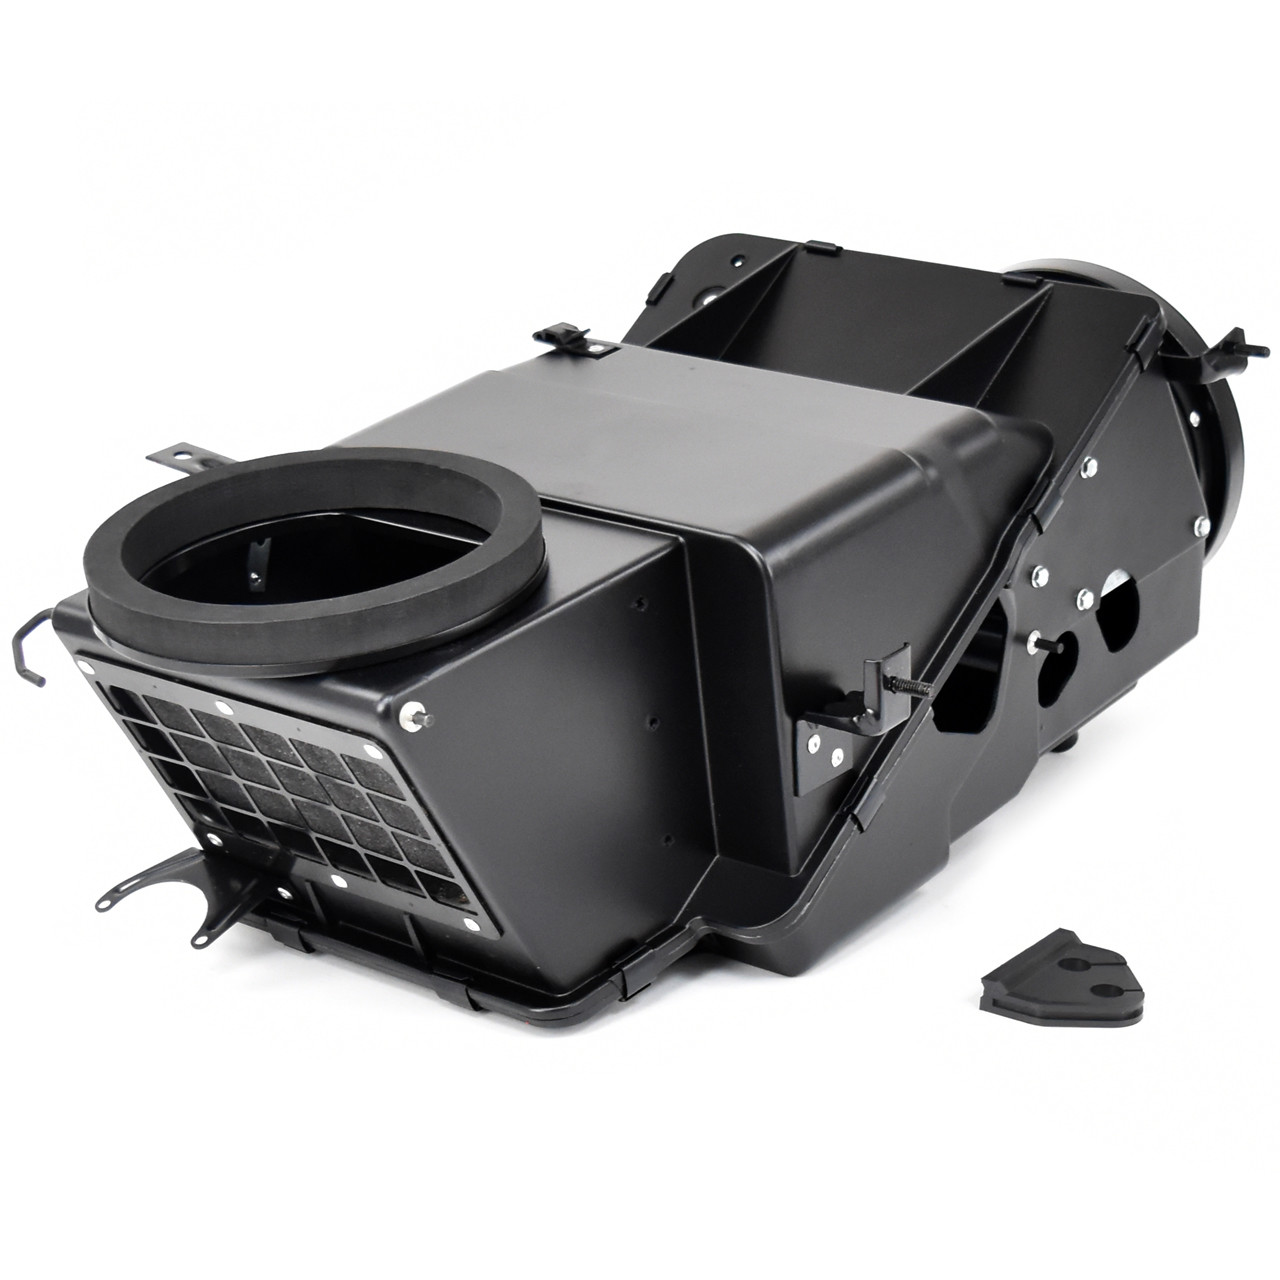 Heater Box With Air Conditioning [FM-EH028]